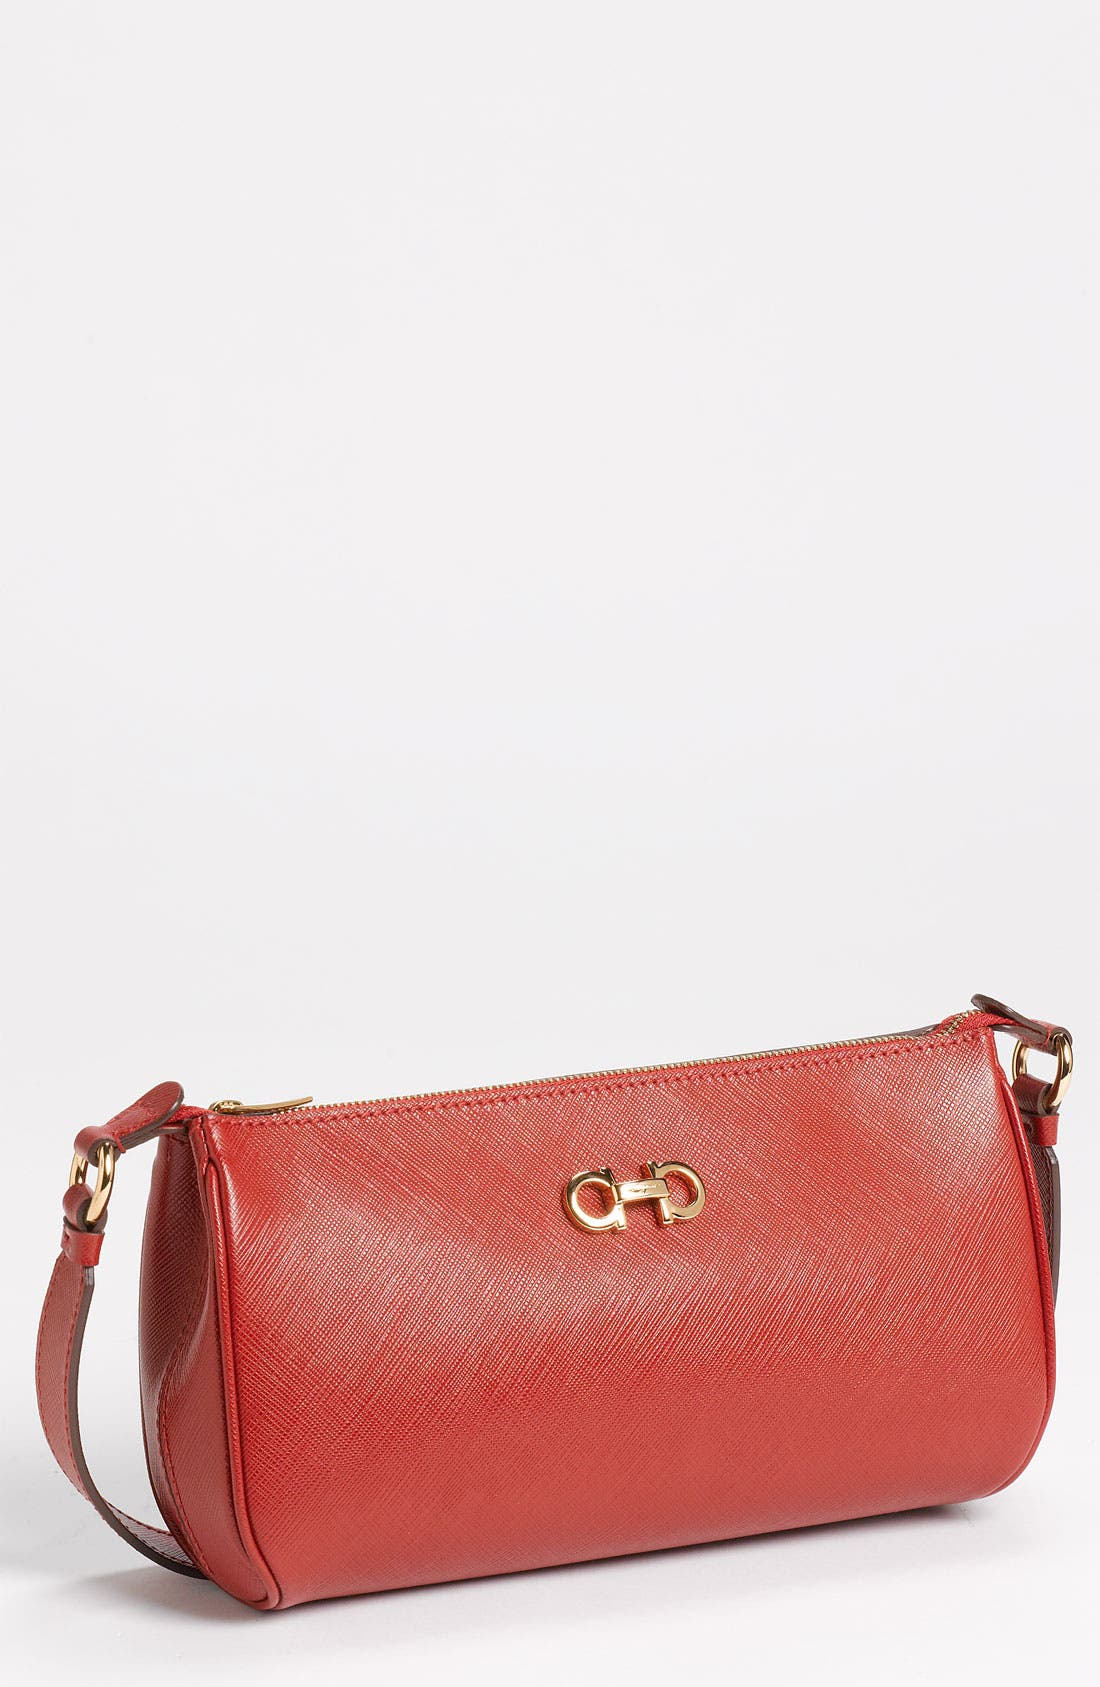 Alternate Image 1 Selected - Salvatore Ferragamo 'Icona Lisetta' Shoulder Bag